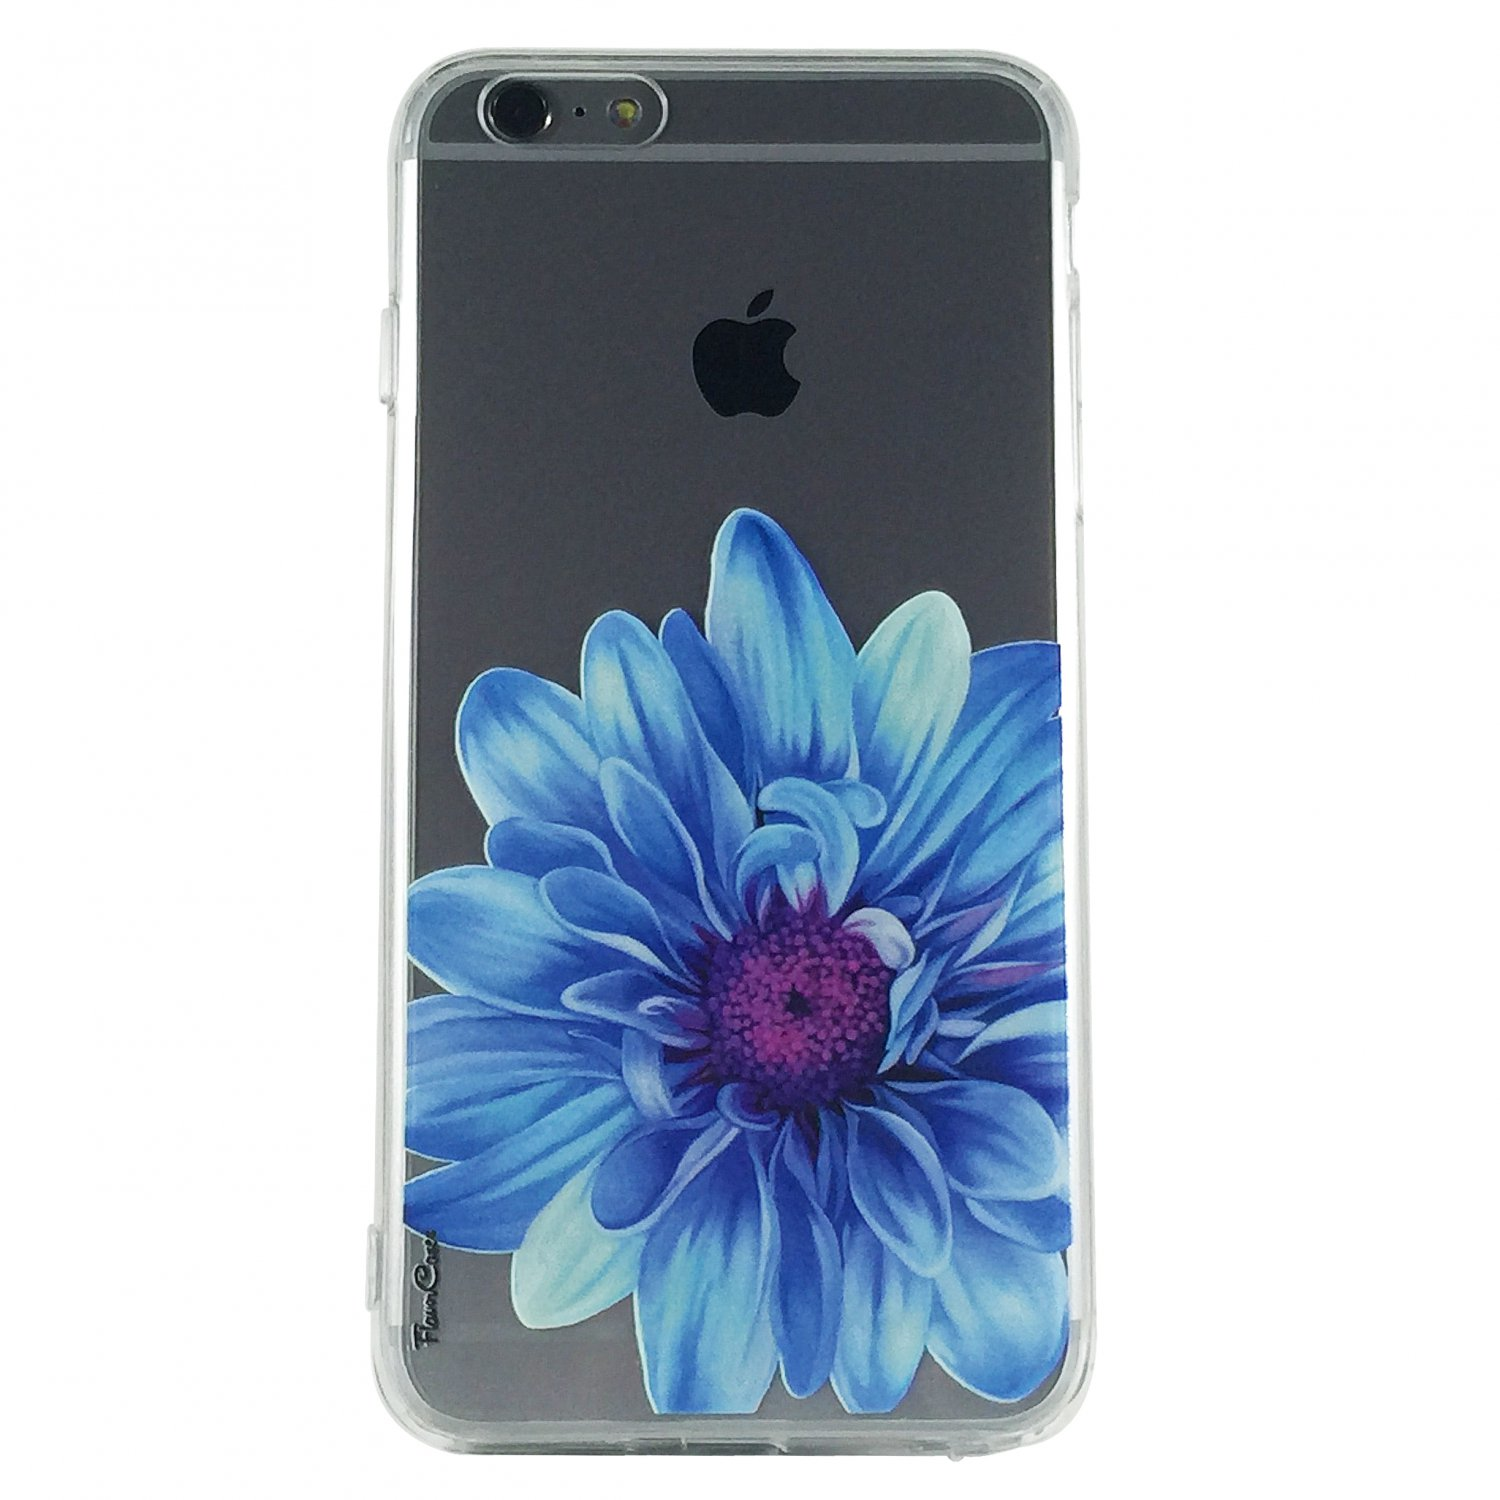 Mums Flowers -New Floral Mums Cell Phone Cases iPhone 6 ip6